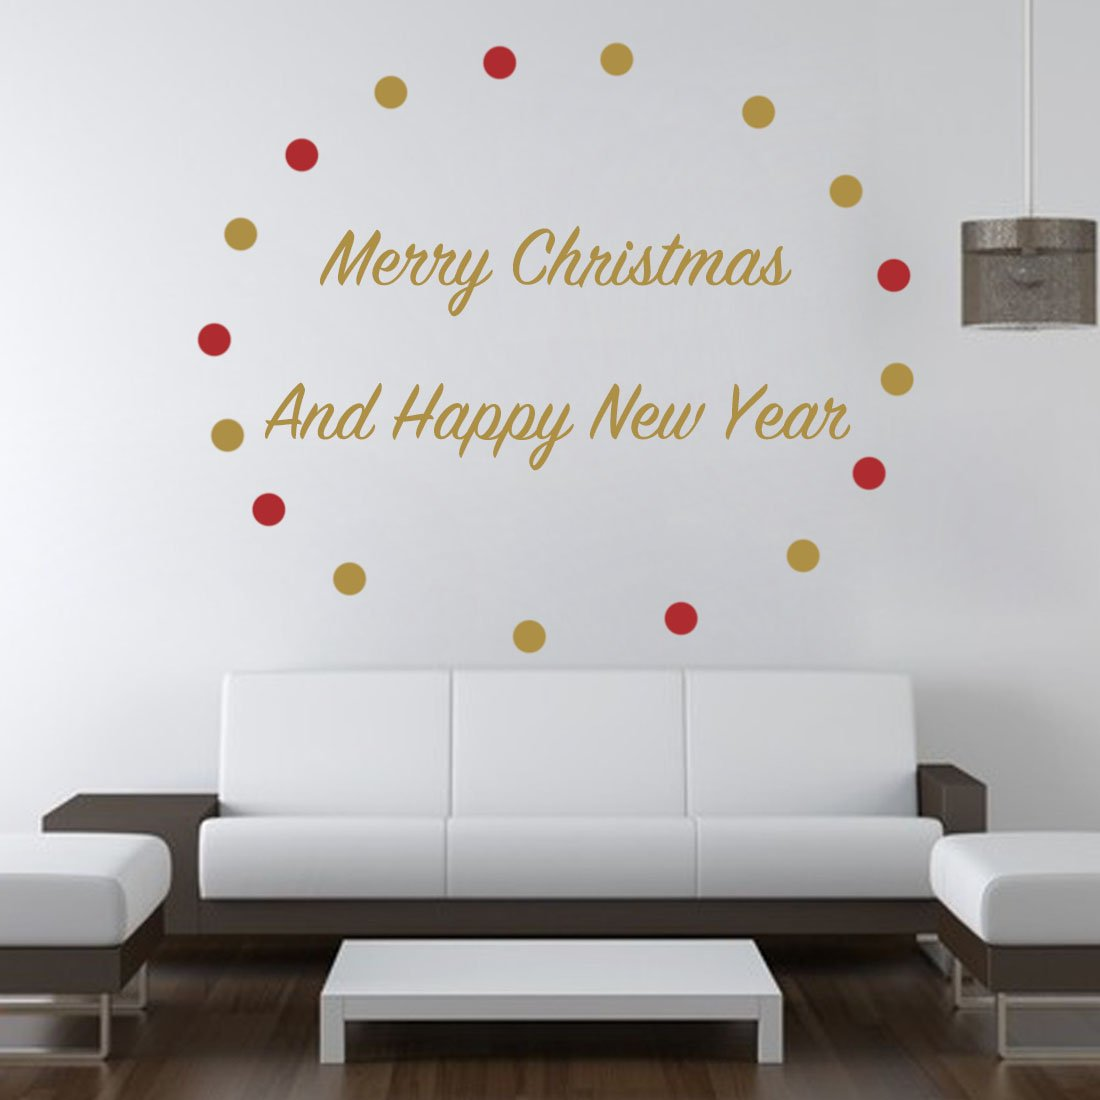 Amazon merry christmas wall decals with wall decal dots amazon merry christmas wall decals with wall decal dots metallic vinyl polka dot decor nursery decal gold home kitchen amipublicfo Gallery